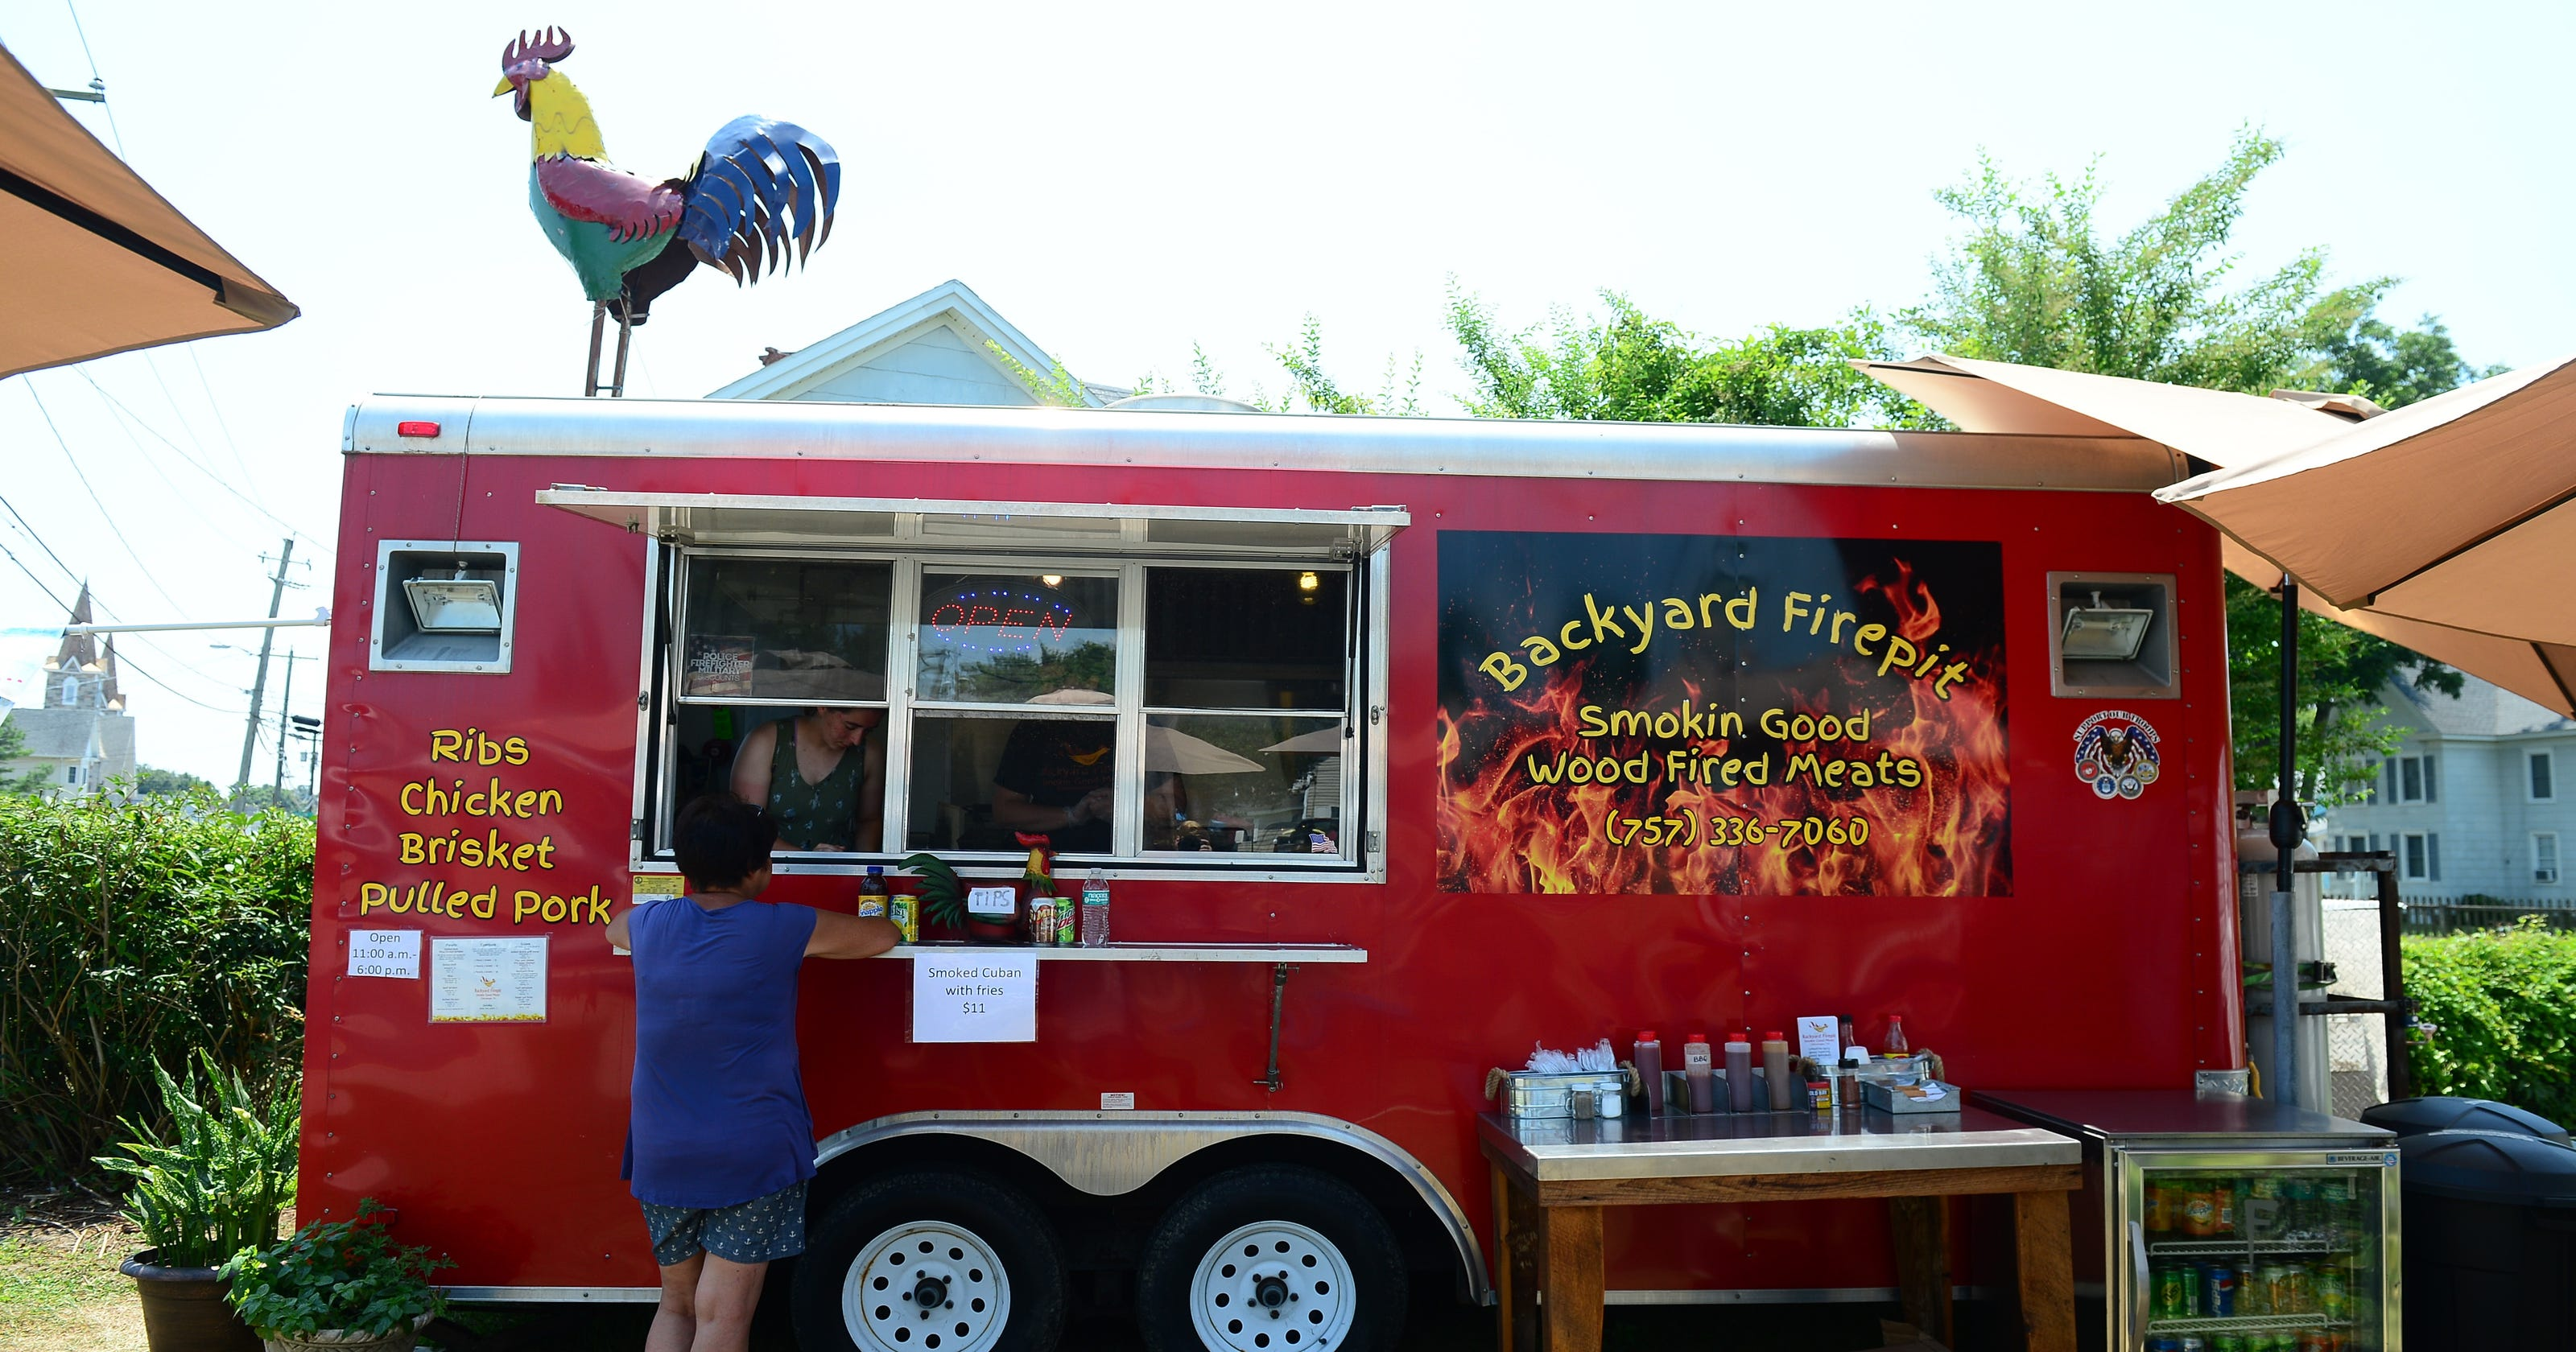 Chincoteague food trucks: What does the future hold?